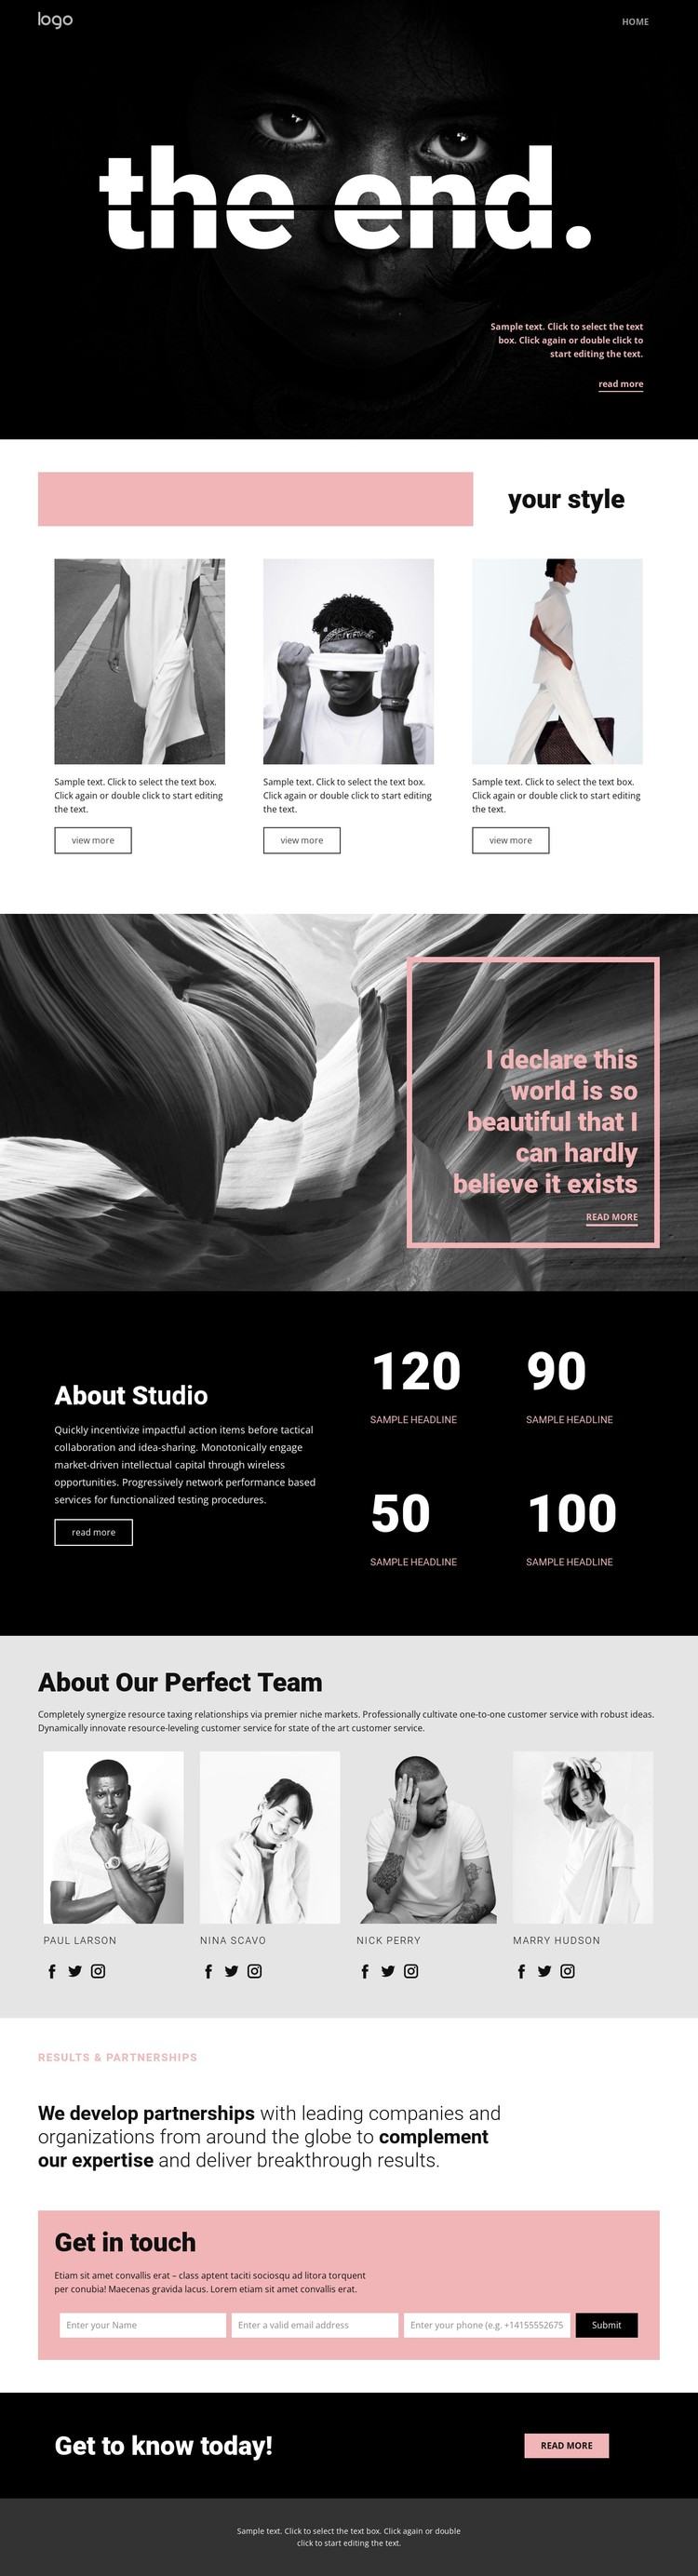 Perfecting styles of art CSS Template